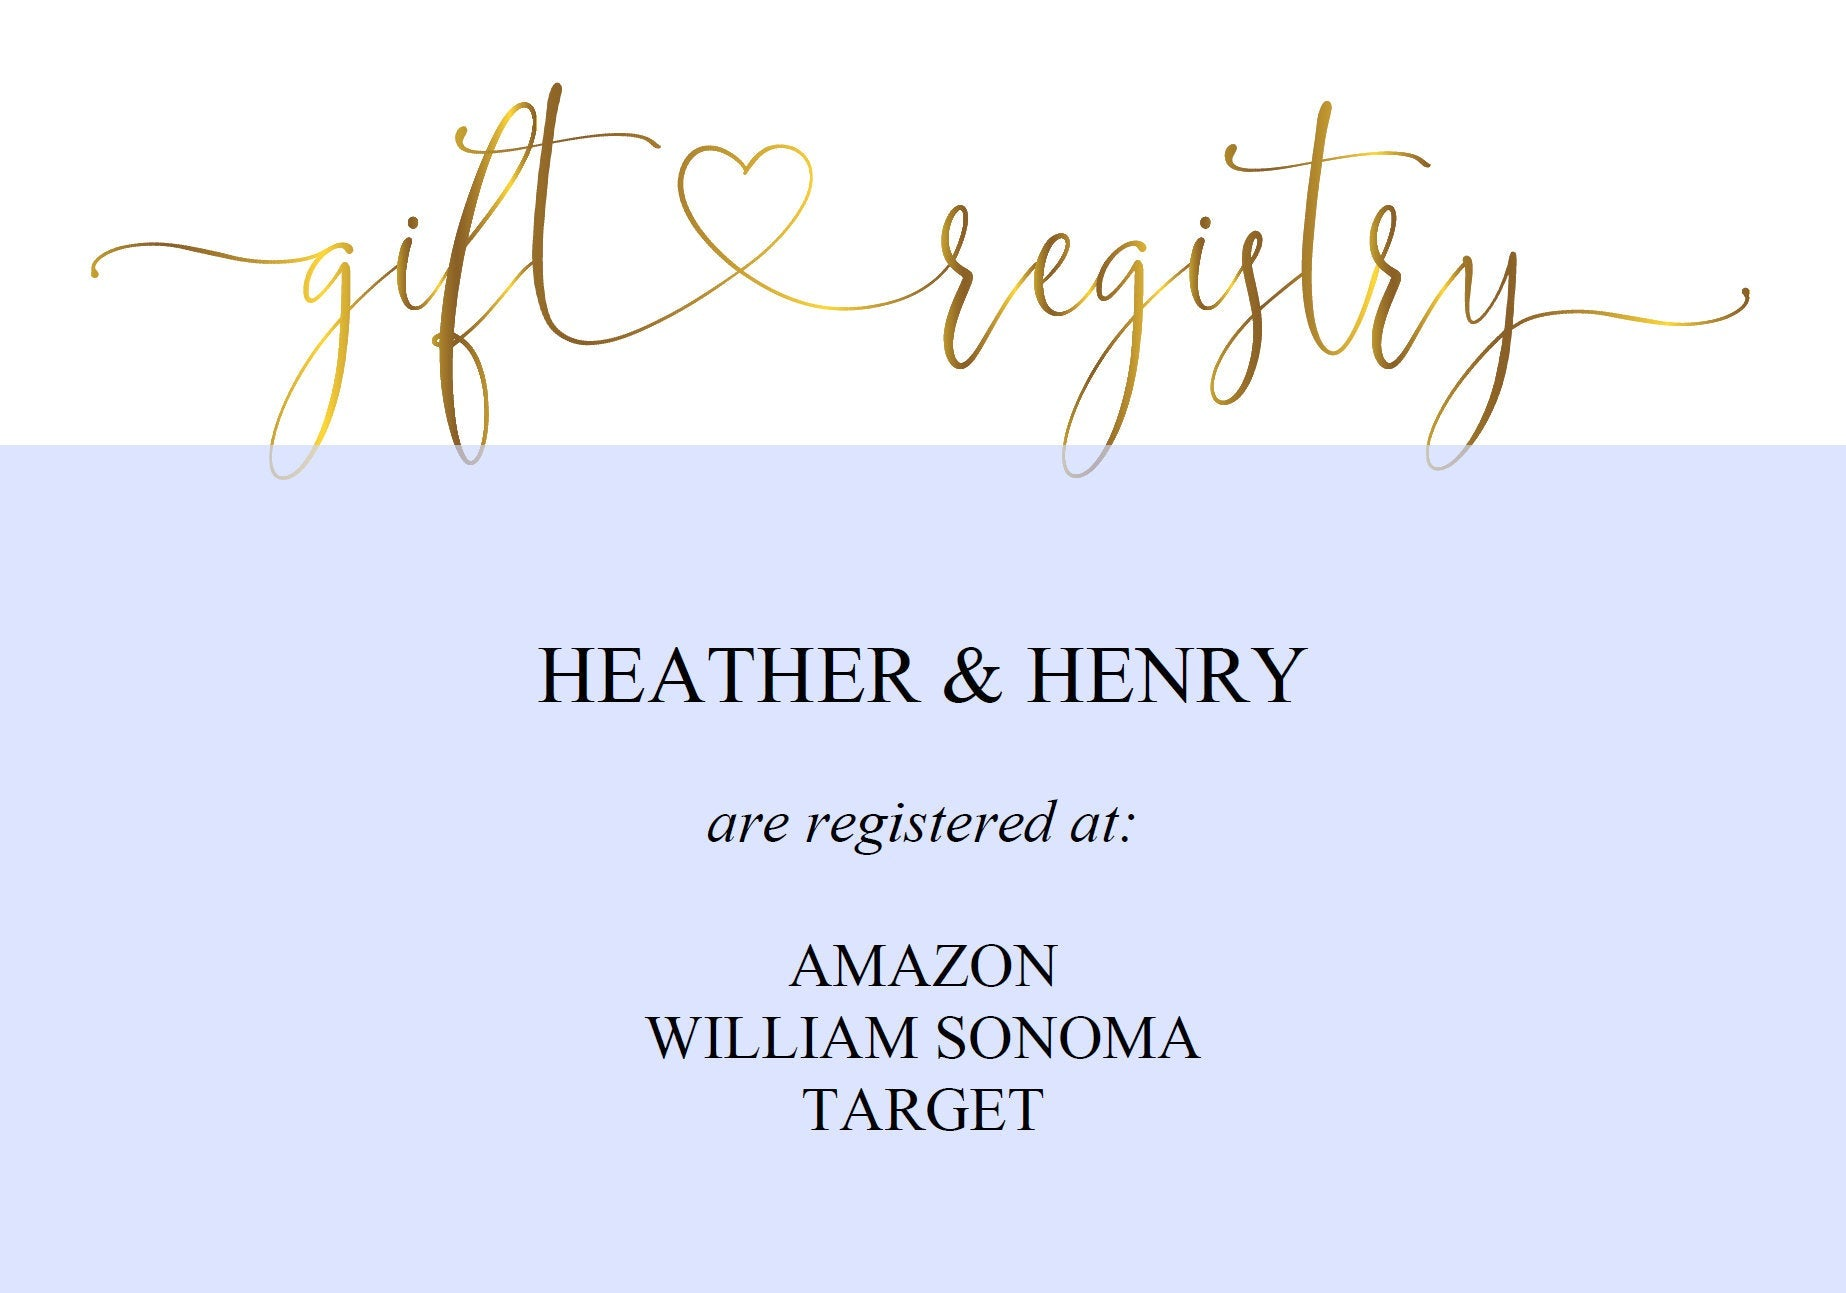 Gold Registry Card, Gift Registry, Wedding Template, Enclosure Cards, Registry Wedding, Shower Registry, Registry Card Insert  - Heather